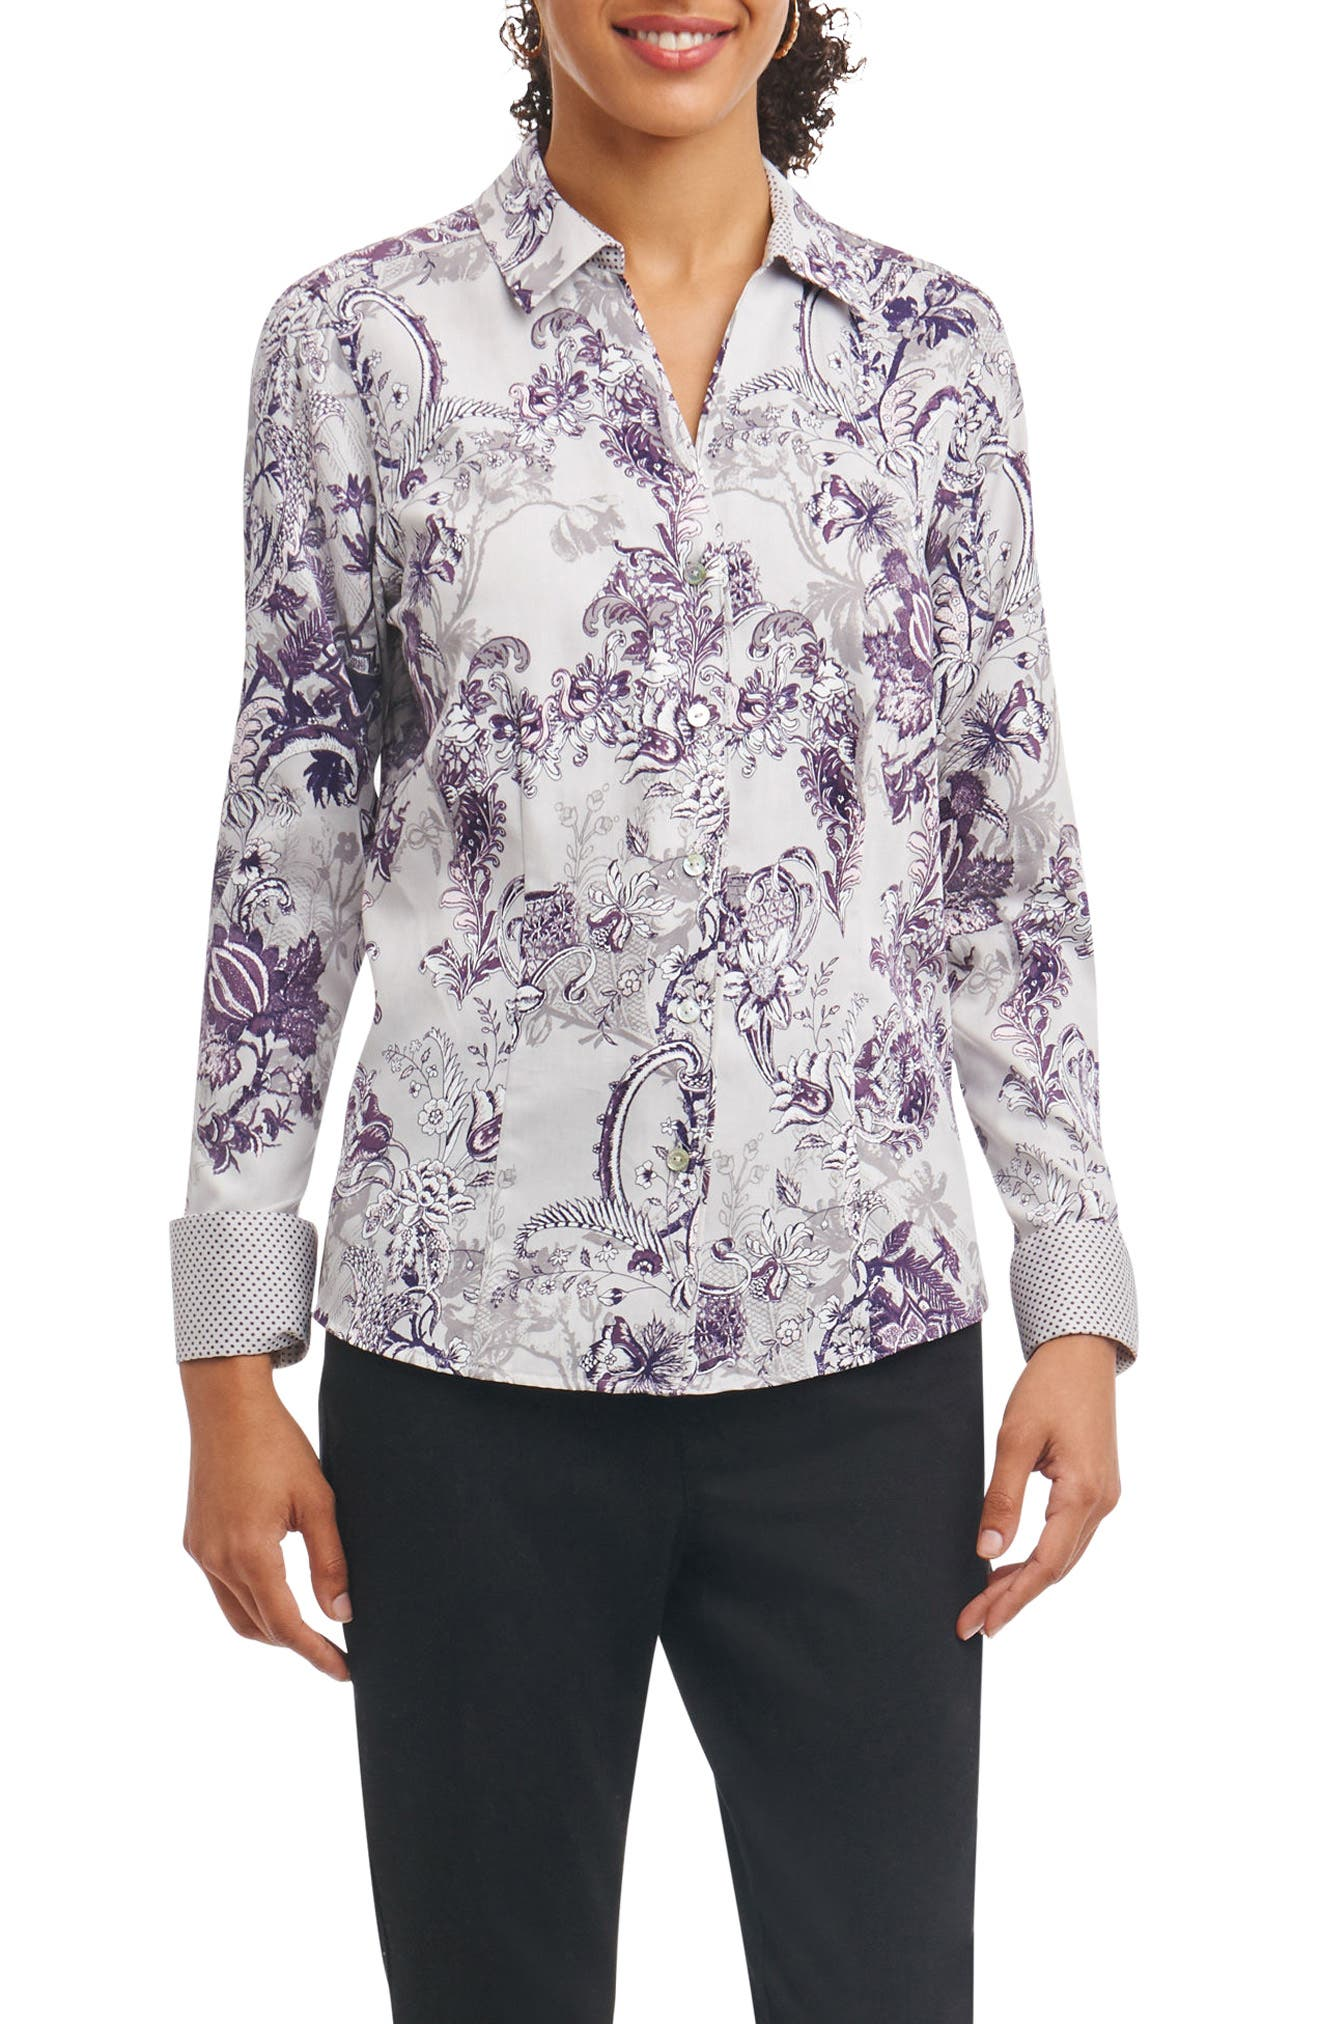 Lauren Floral Tapestry Wrinkle Free Shirt,                         Main,                         color, 037